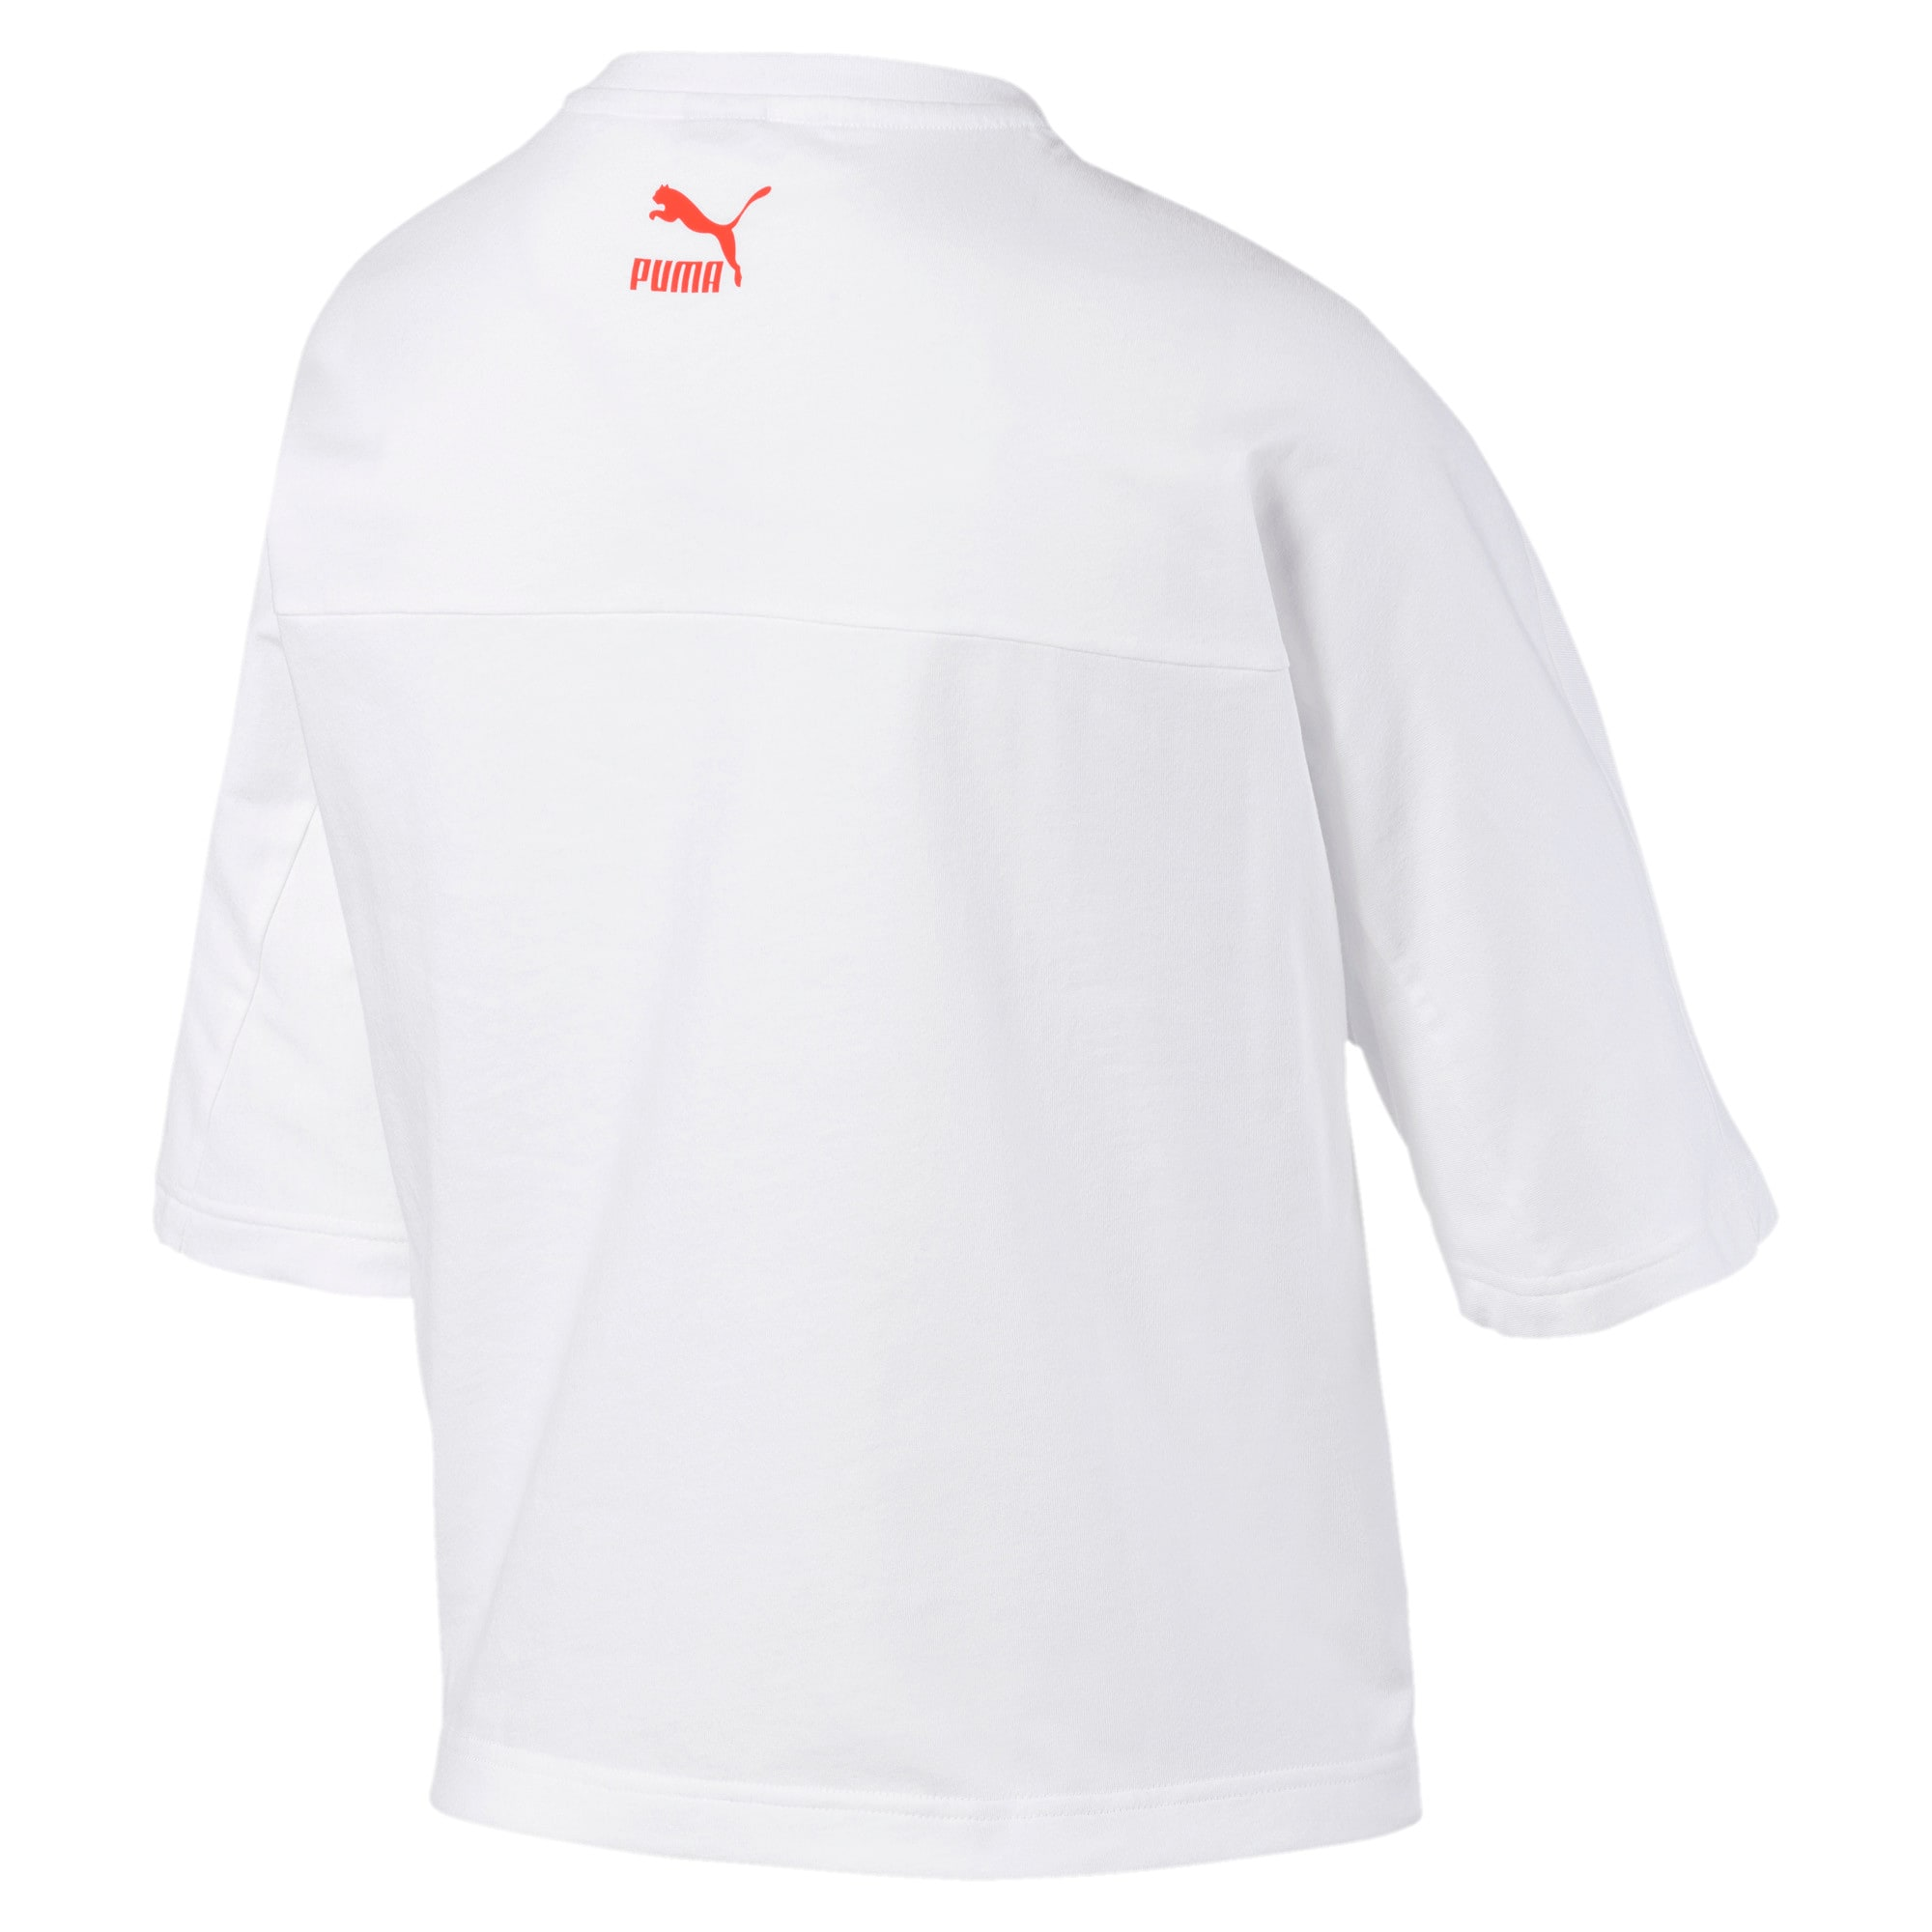 Thumbnail 5 of luXTG Women's Tee, Puma White, medium